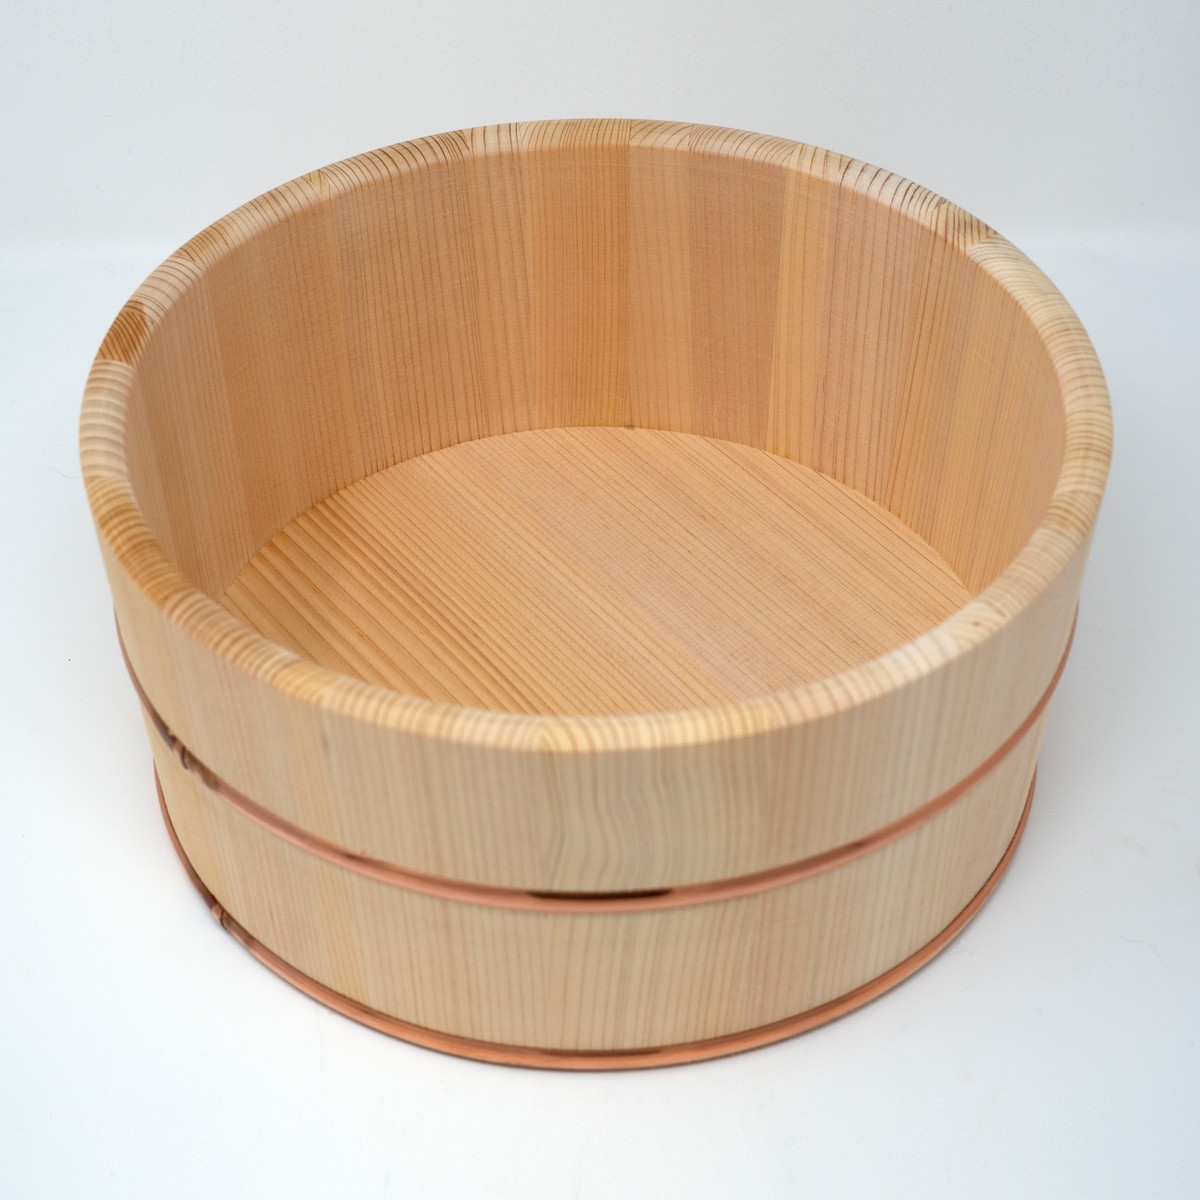 Photo of Oke Bath Bowl